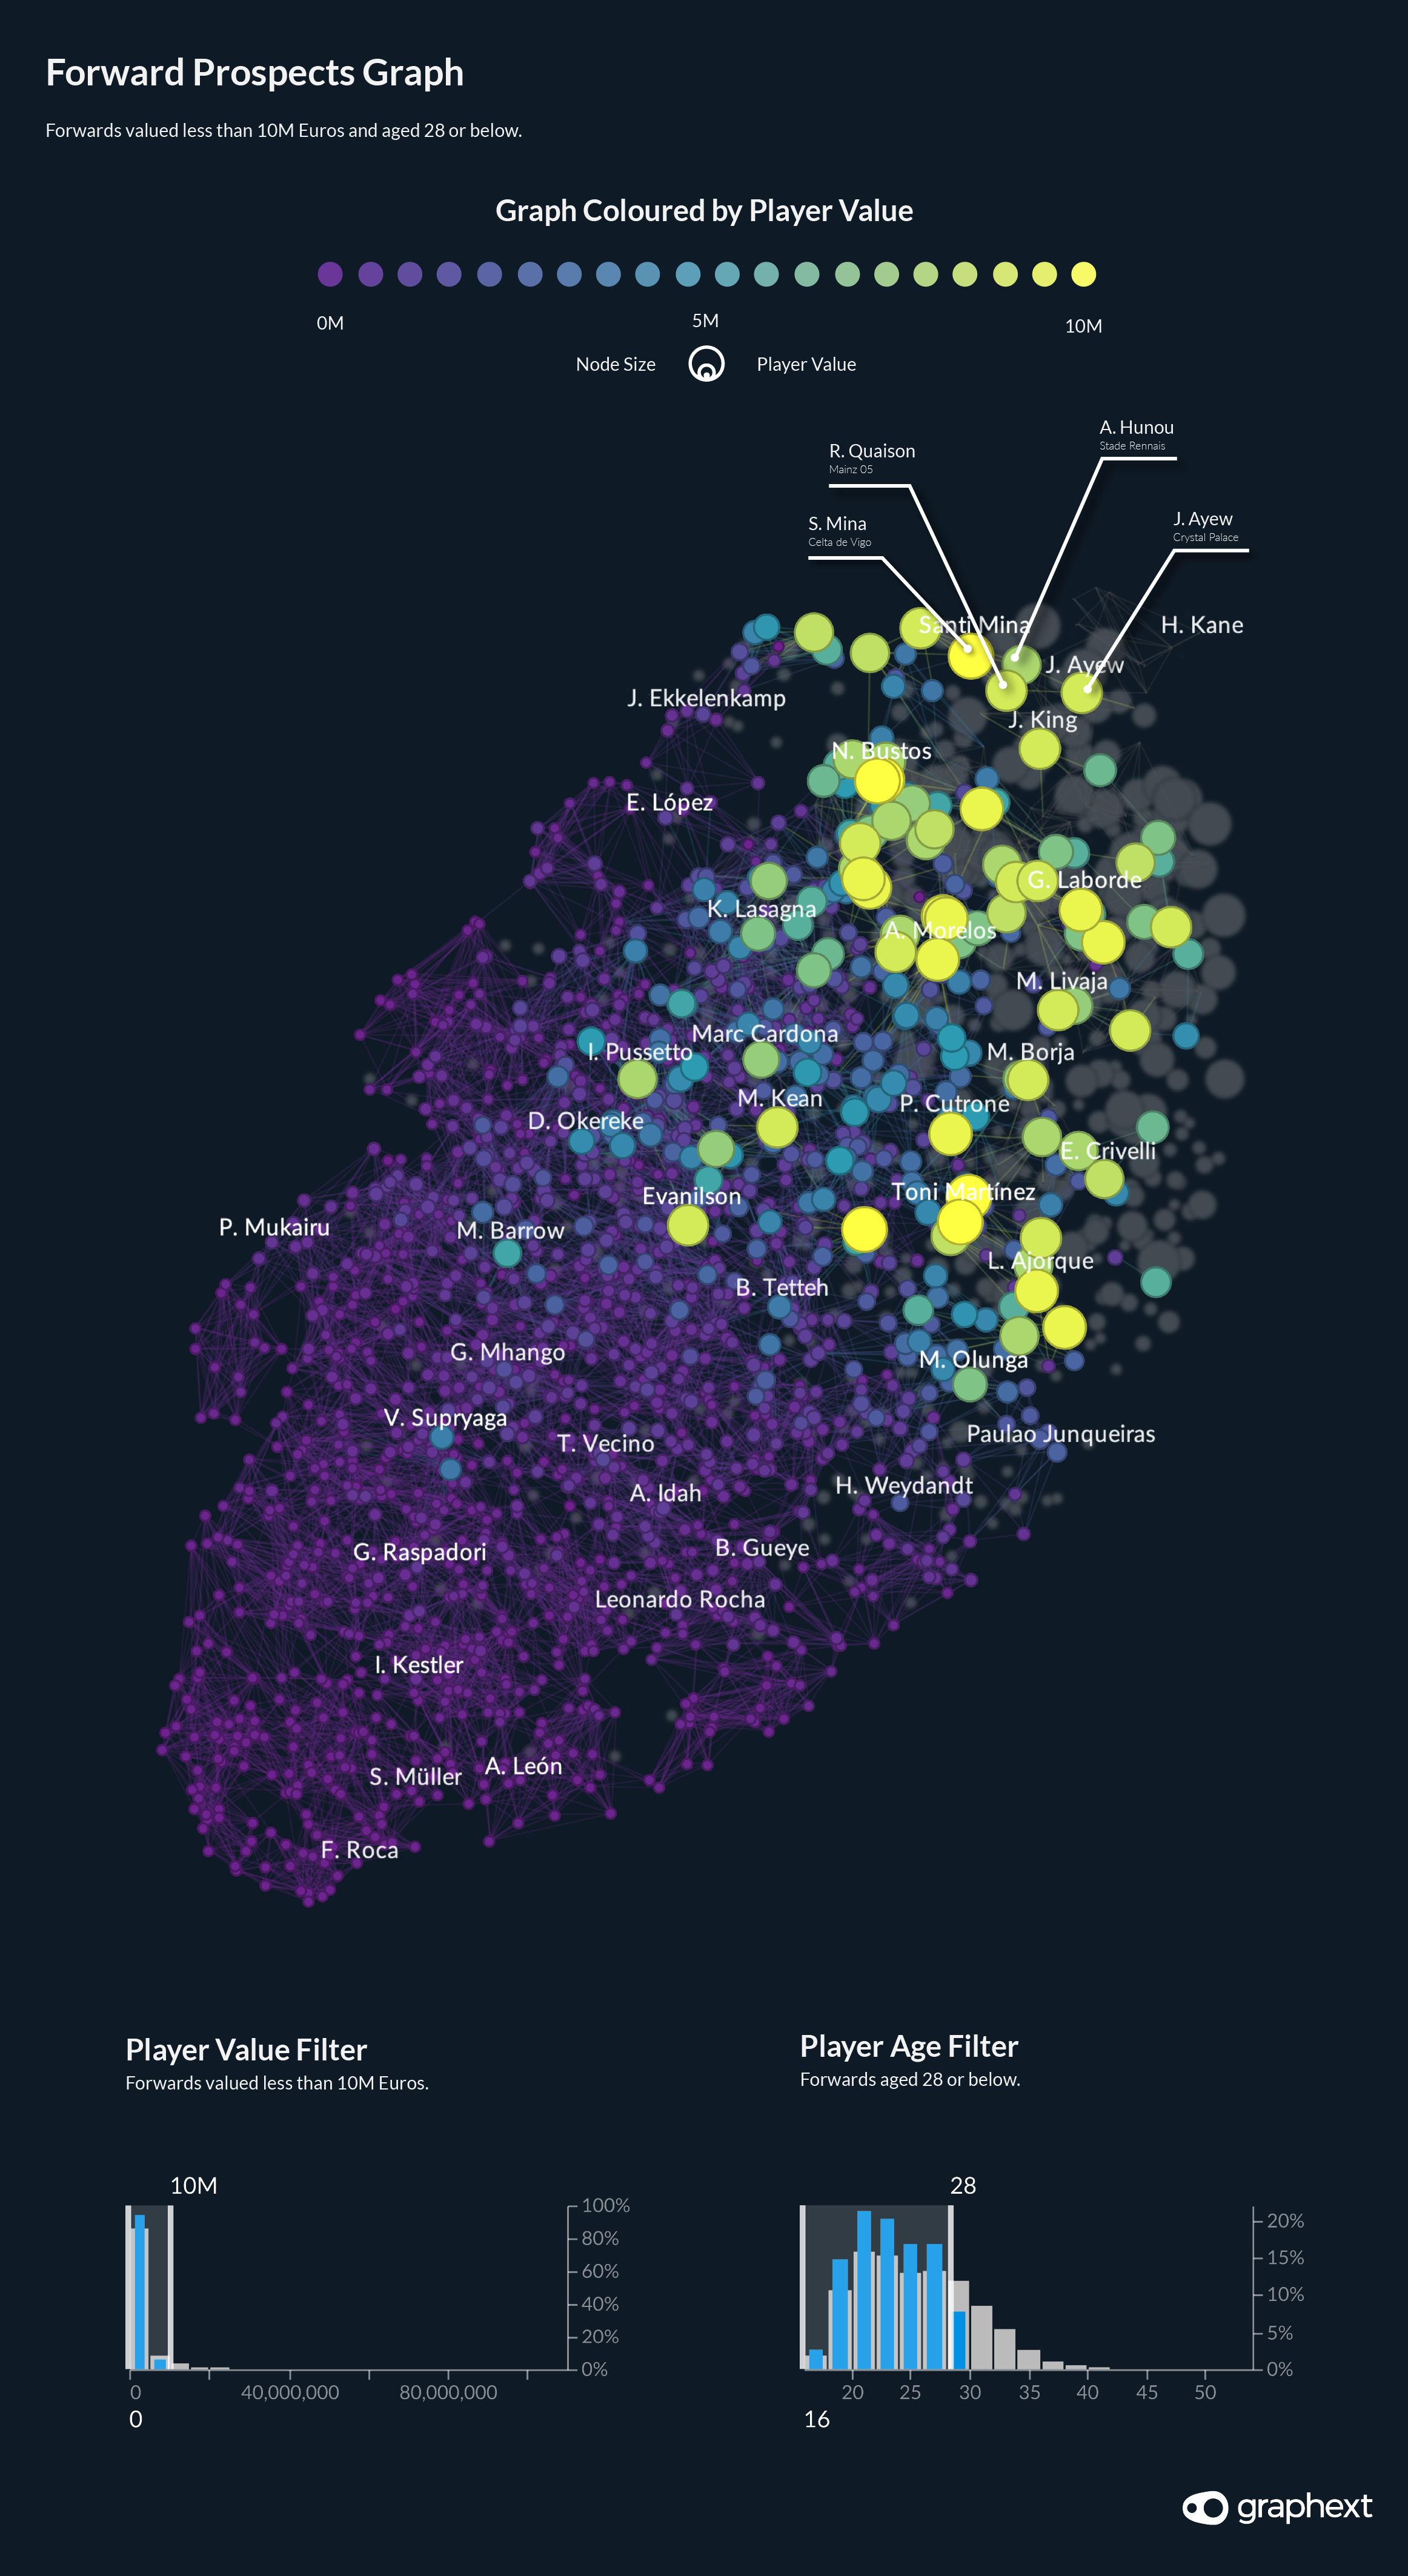 A network visualisation highlighting the best attacking prospects in the FIFA dataset.